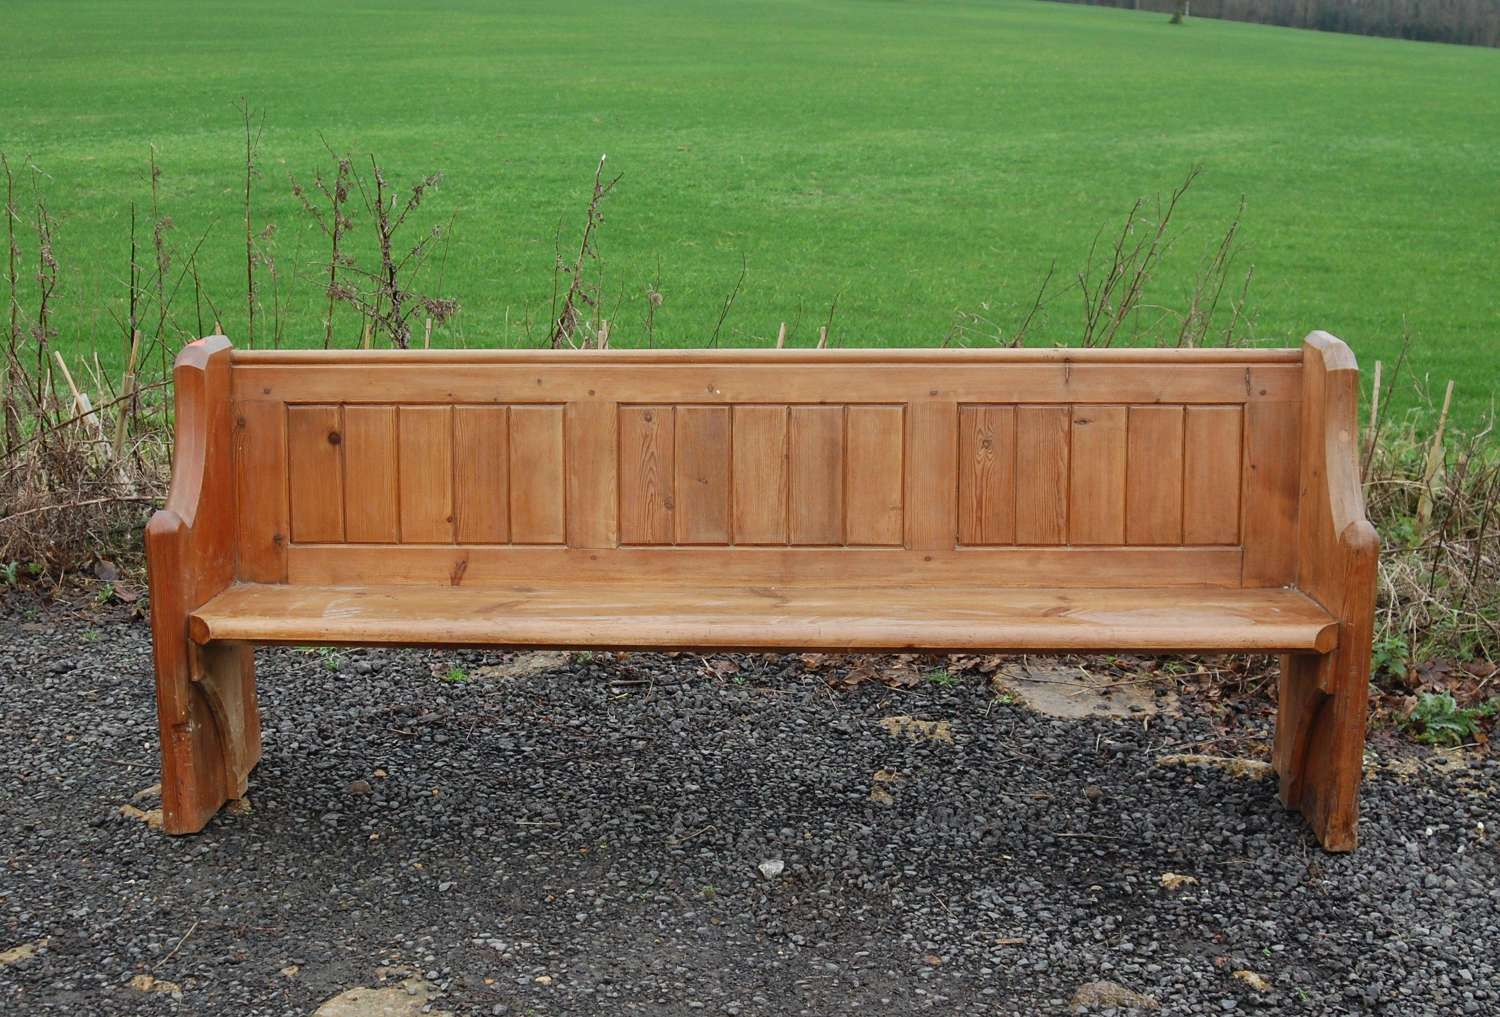 M1269 AN ATTRACTIVE RECLAIMED PINE CHURCH PEW / BENCH